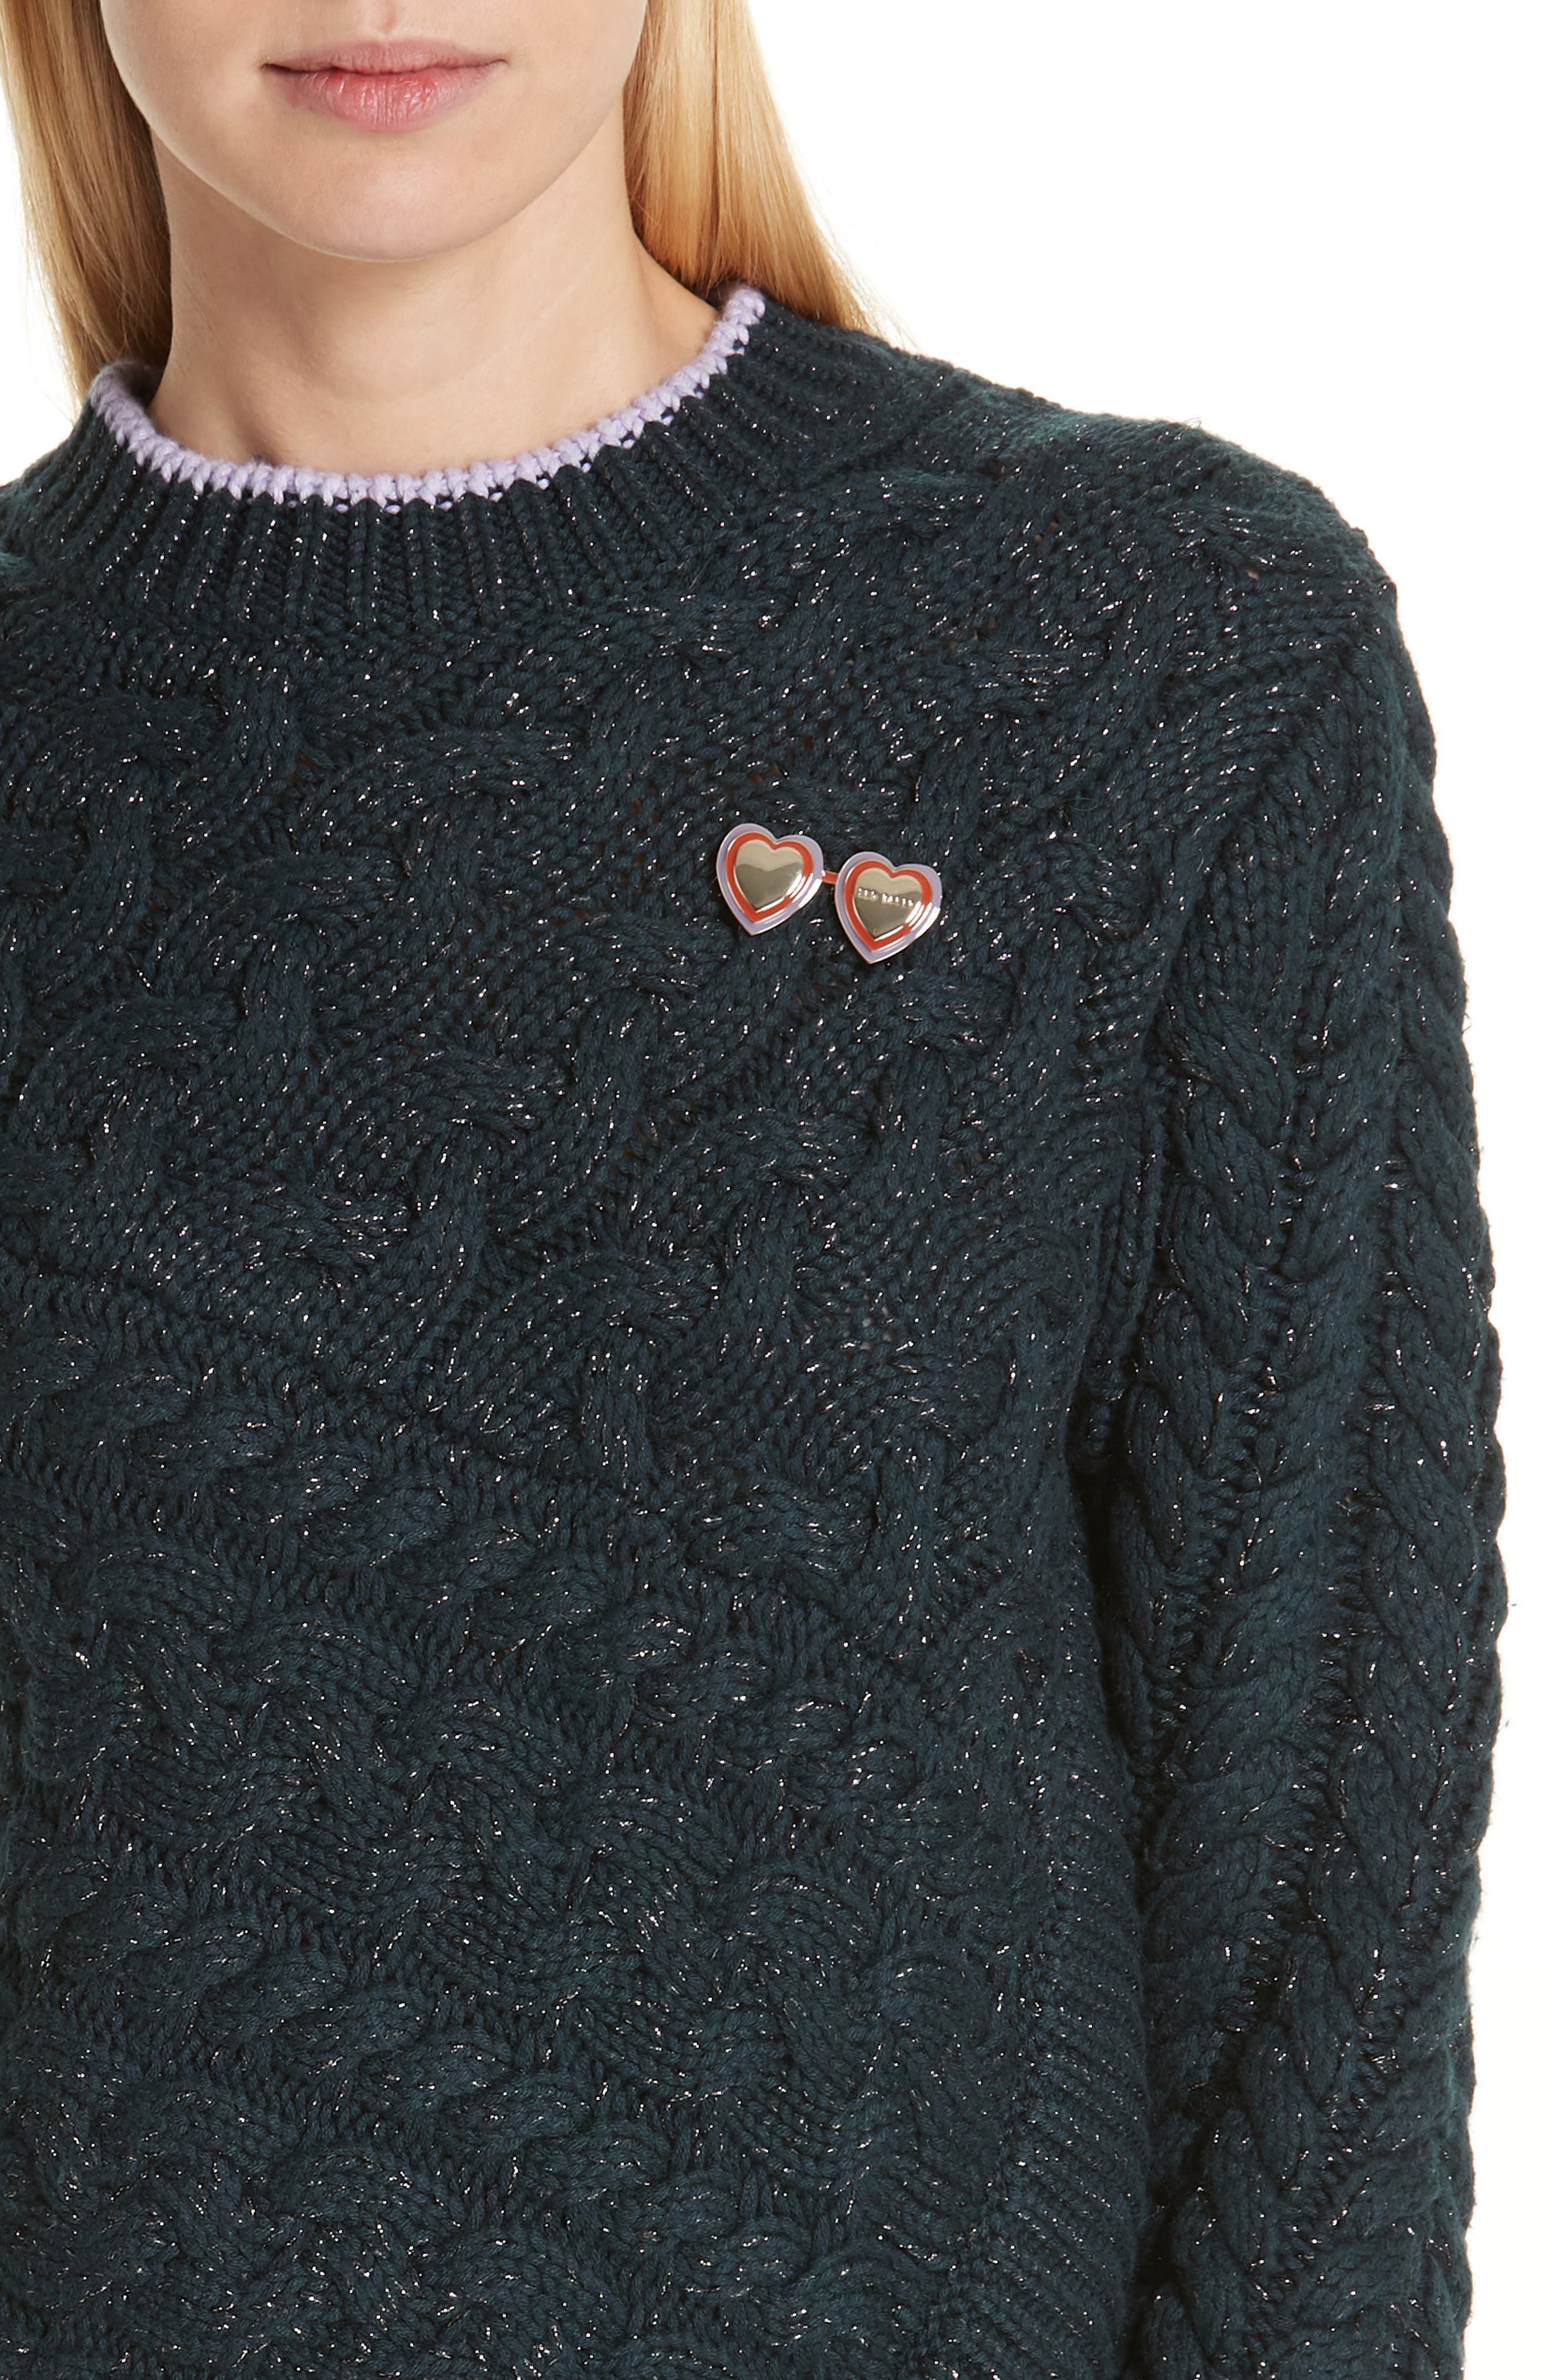 Colour by Numbers Charo Cable Knit Sweater,                             Alternate thumbnail 4, color,                             301